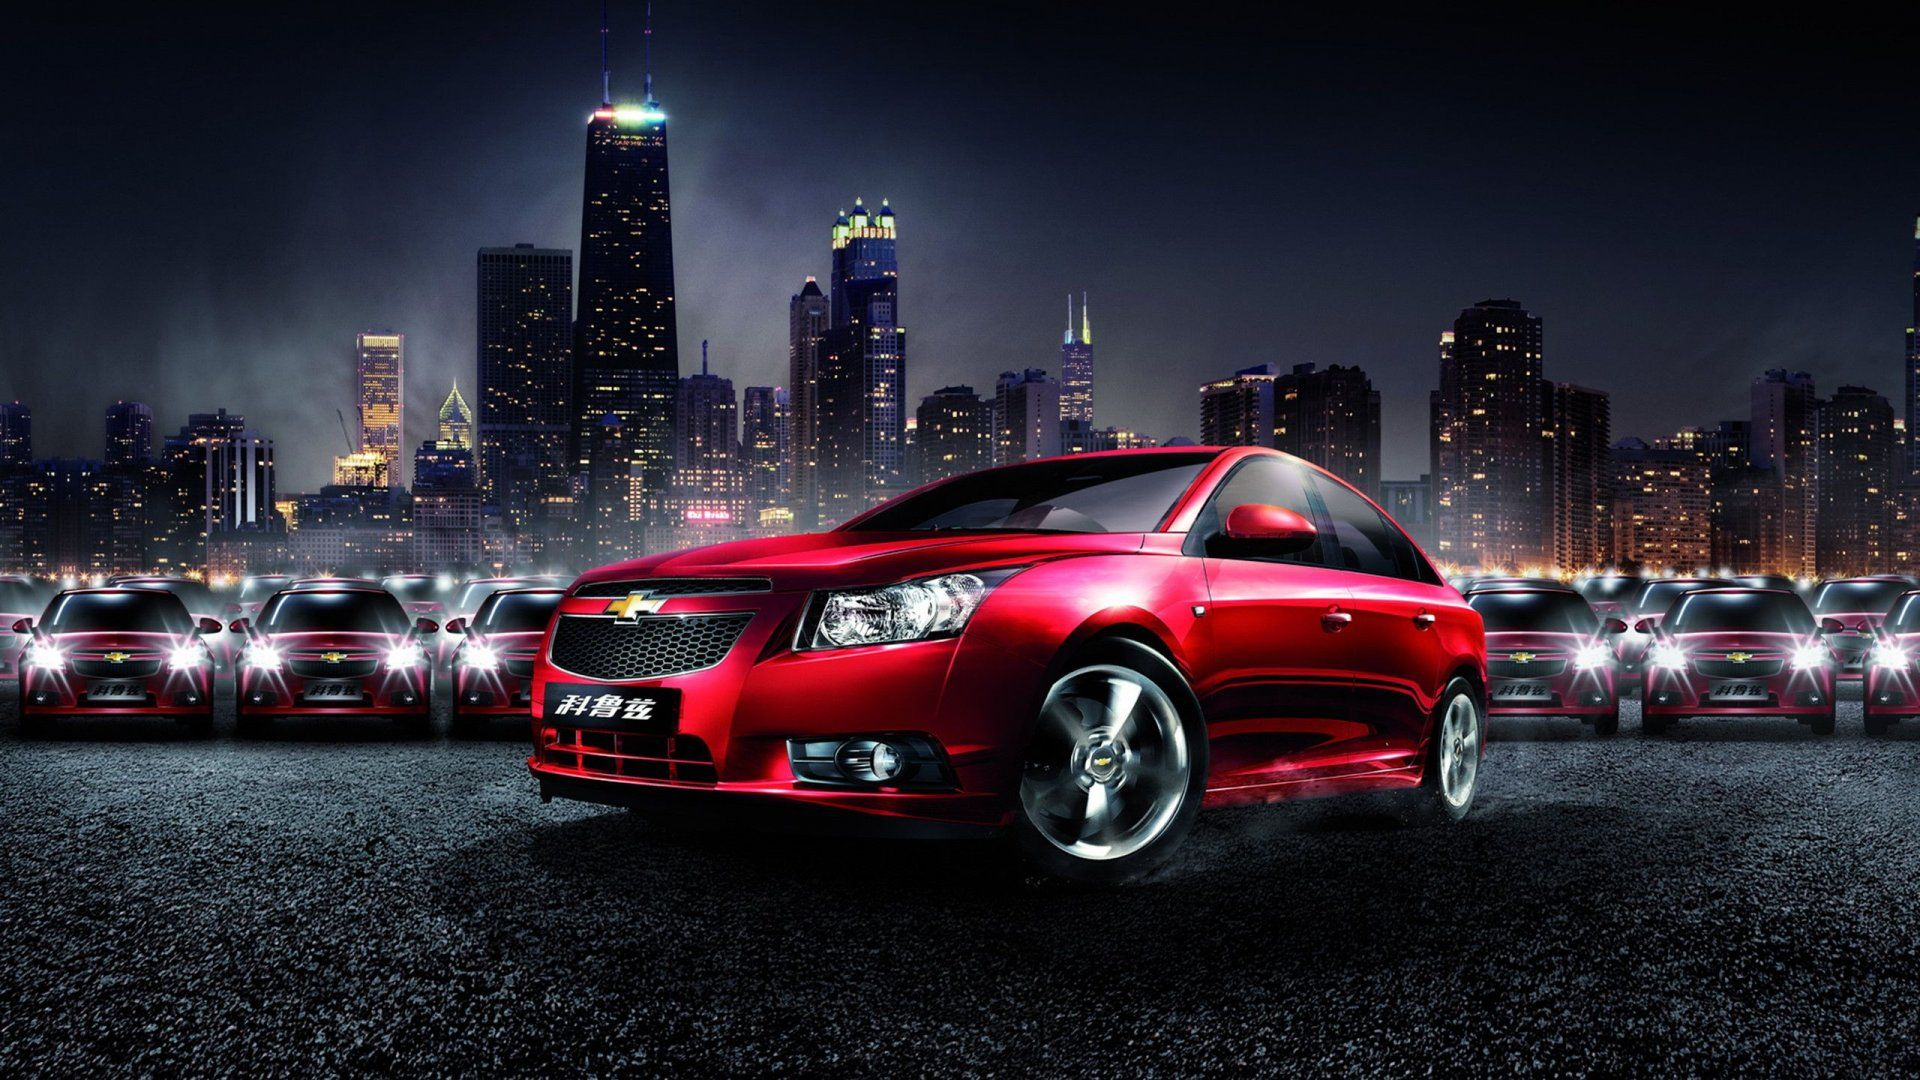 Chevrolet cruze hd wallpapers wallpapers catalog pinterest chevrolet cruze hd wallpapers voltagebd Image collections